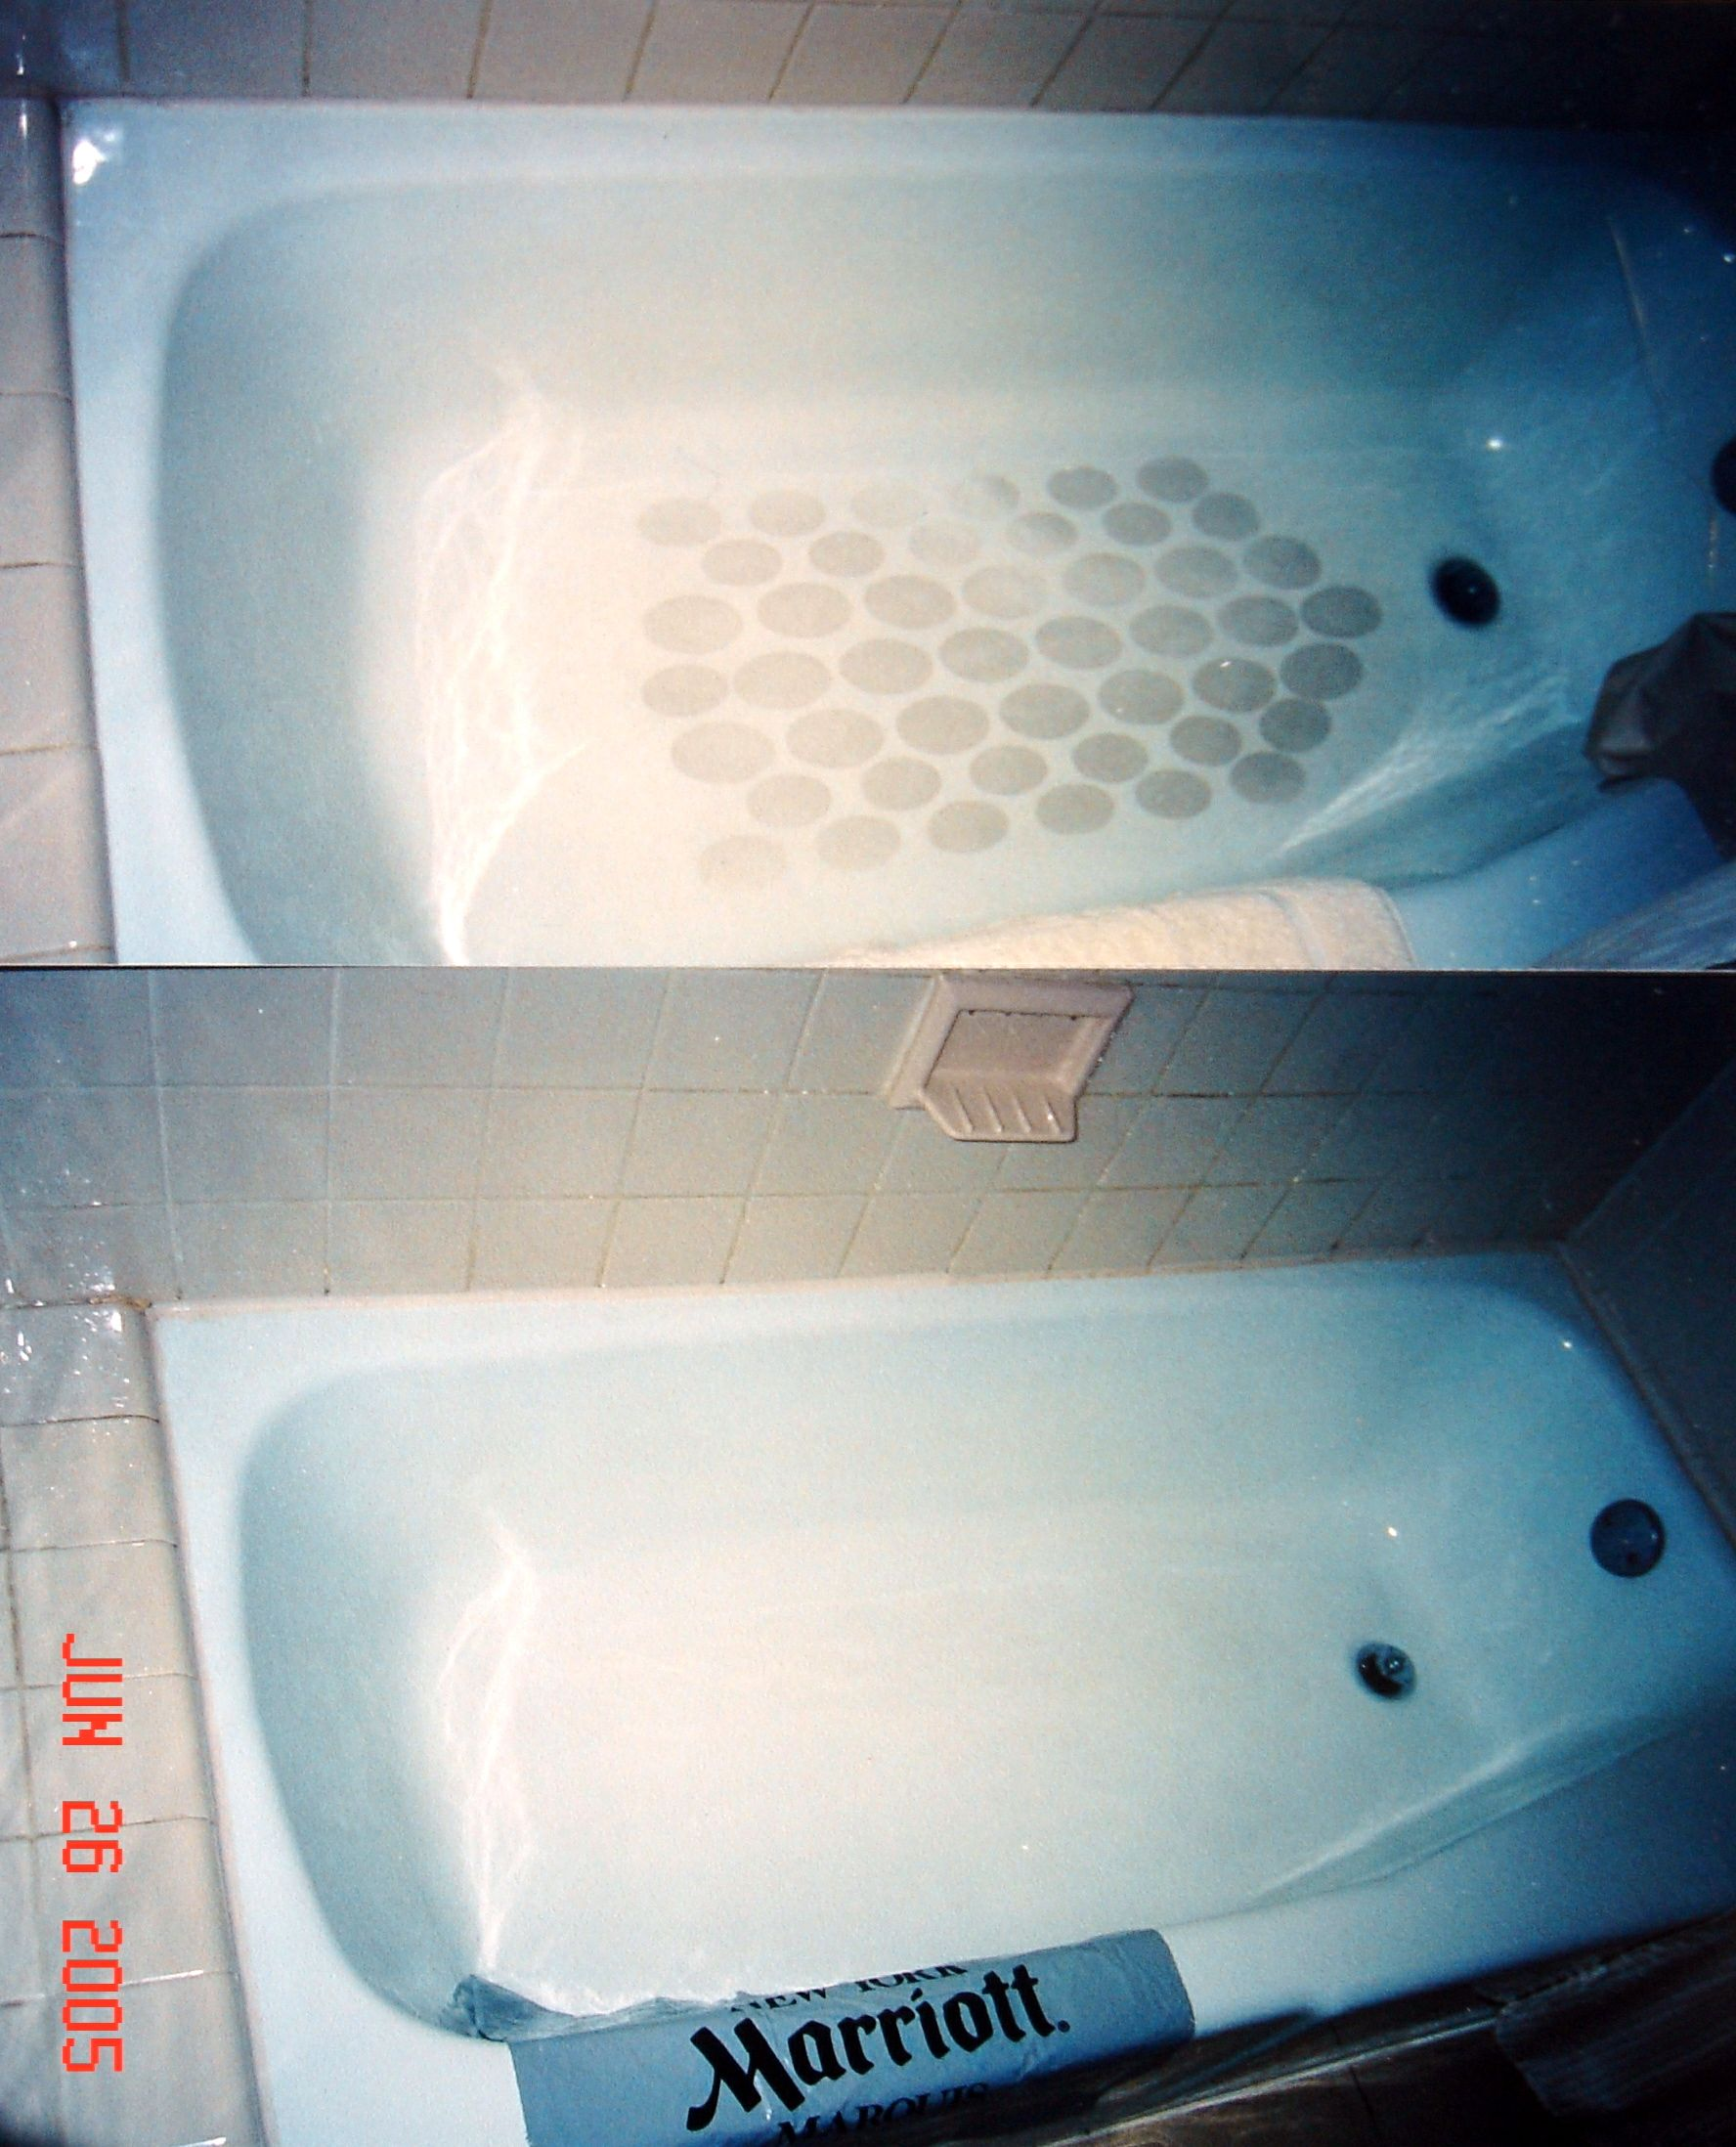 net for jpg bathtub furniture best stylish how from bob clean inside to attractive a cleaner bathroom vila with finelyground